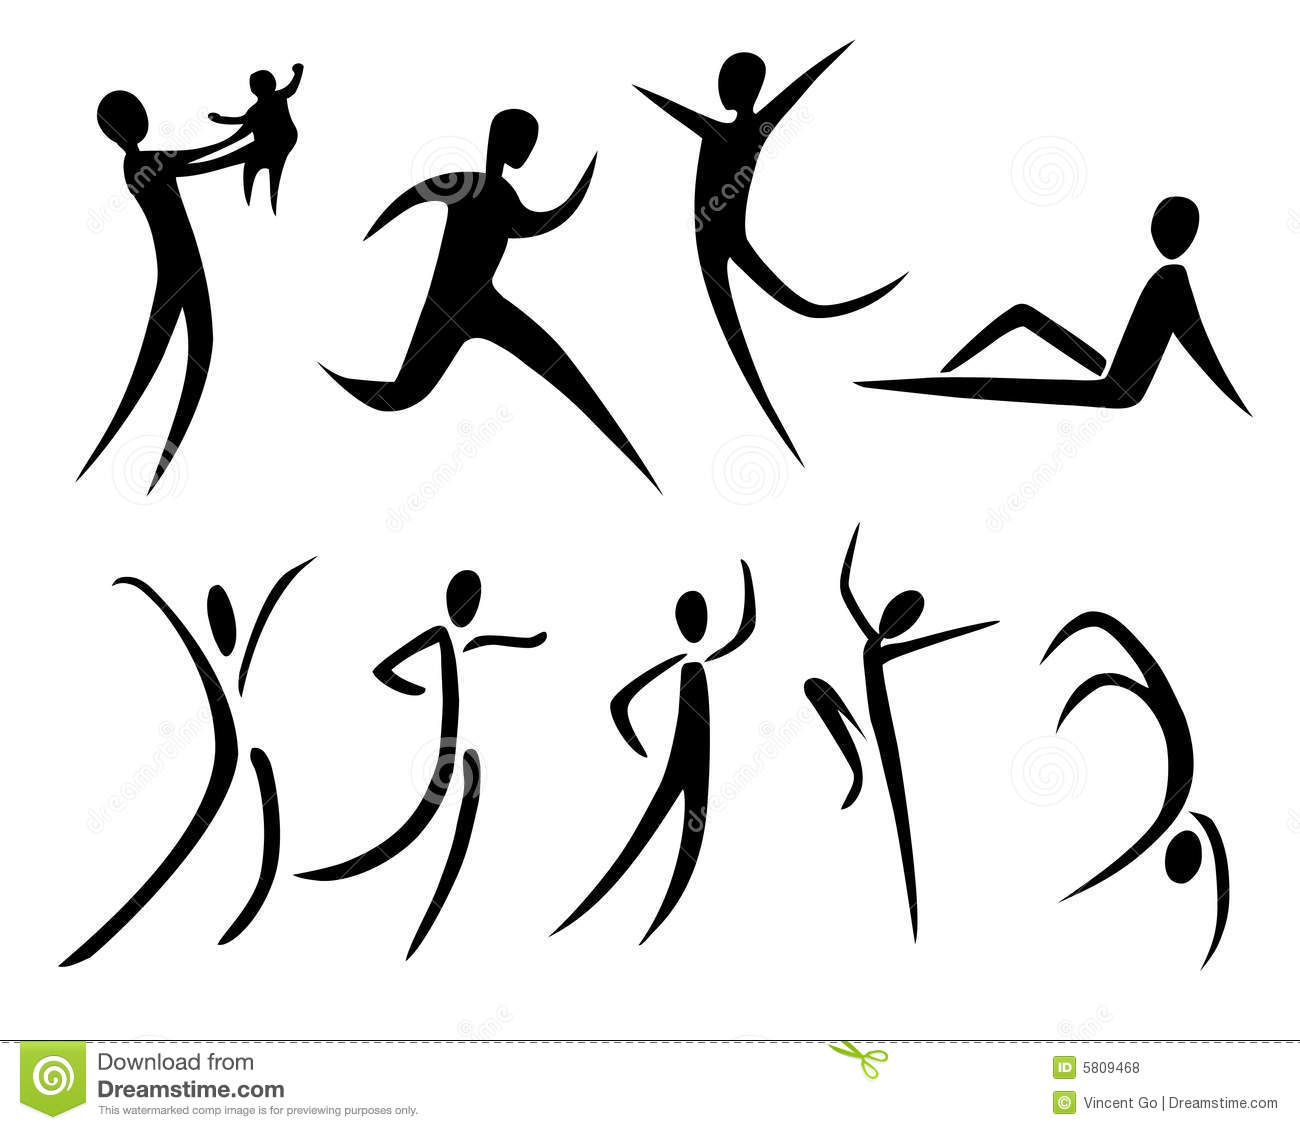 Body movement clipart.